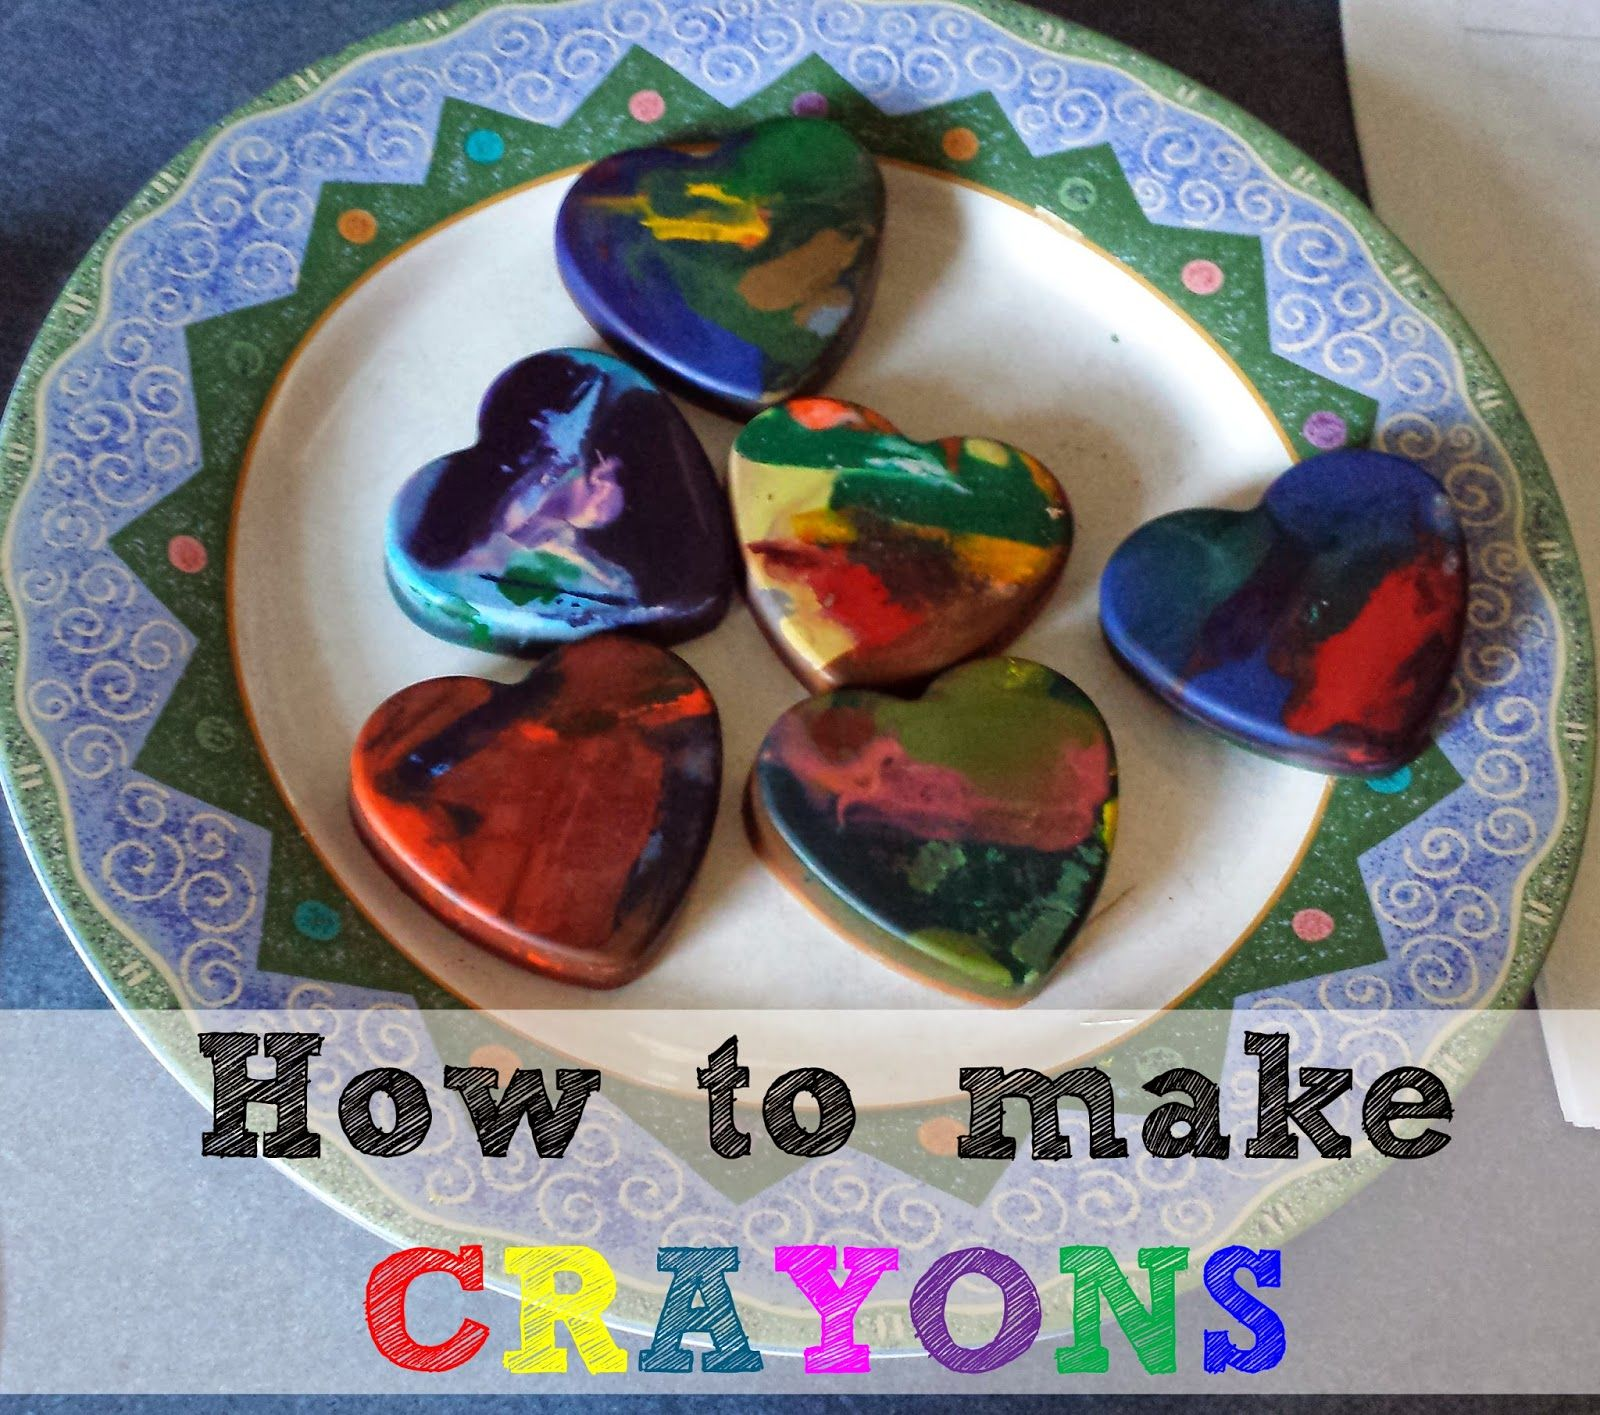 Give those broken crayons new life. Creating fun shapes with your broken crayons is easier than you think!